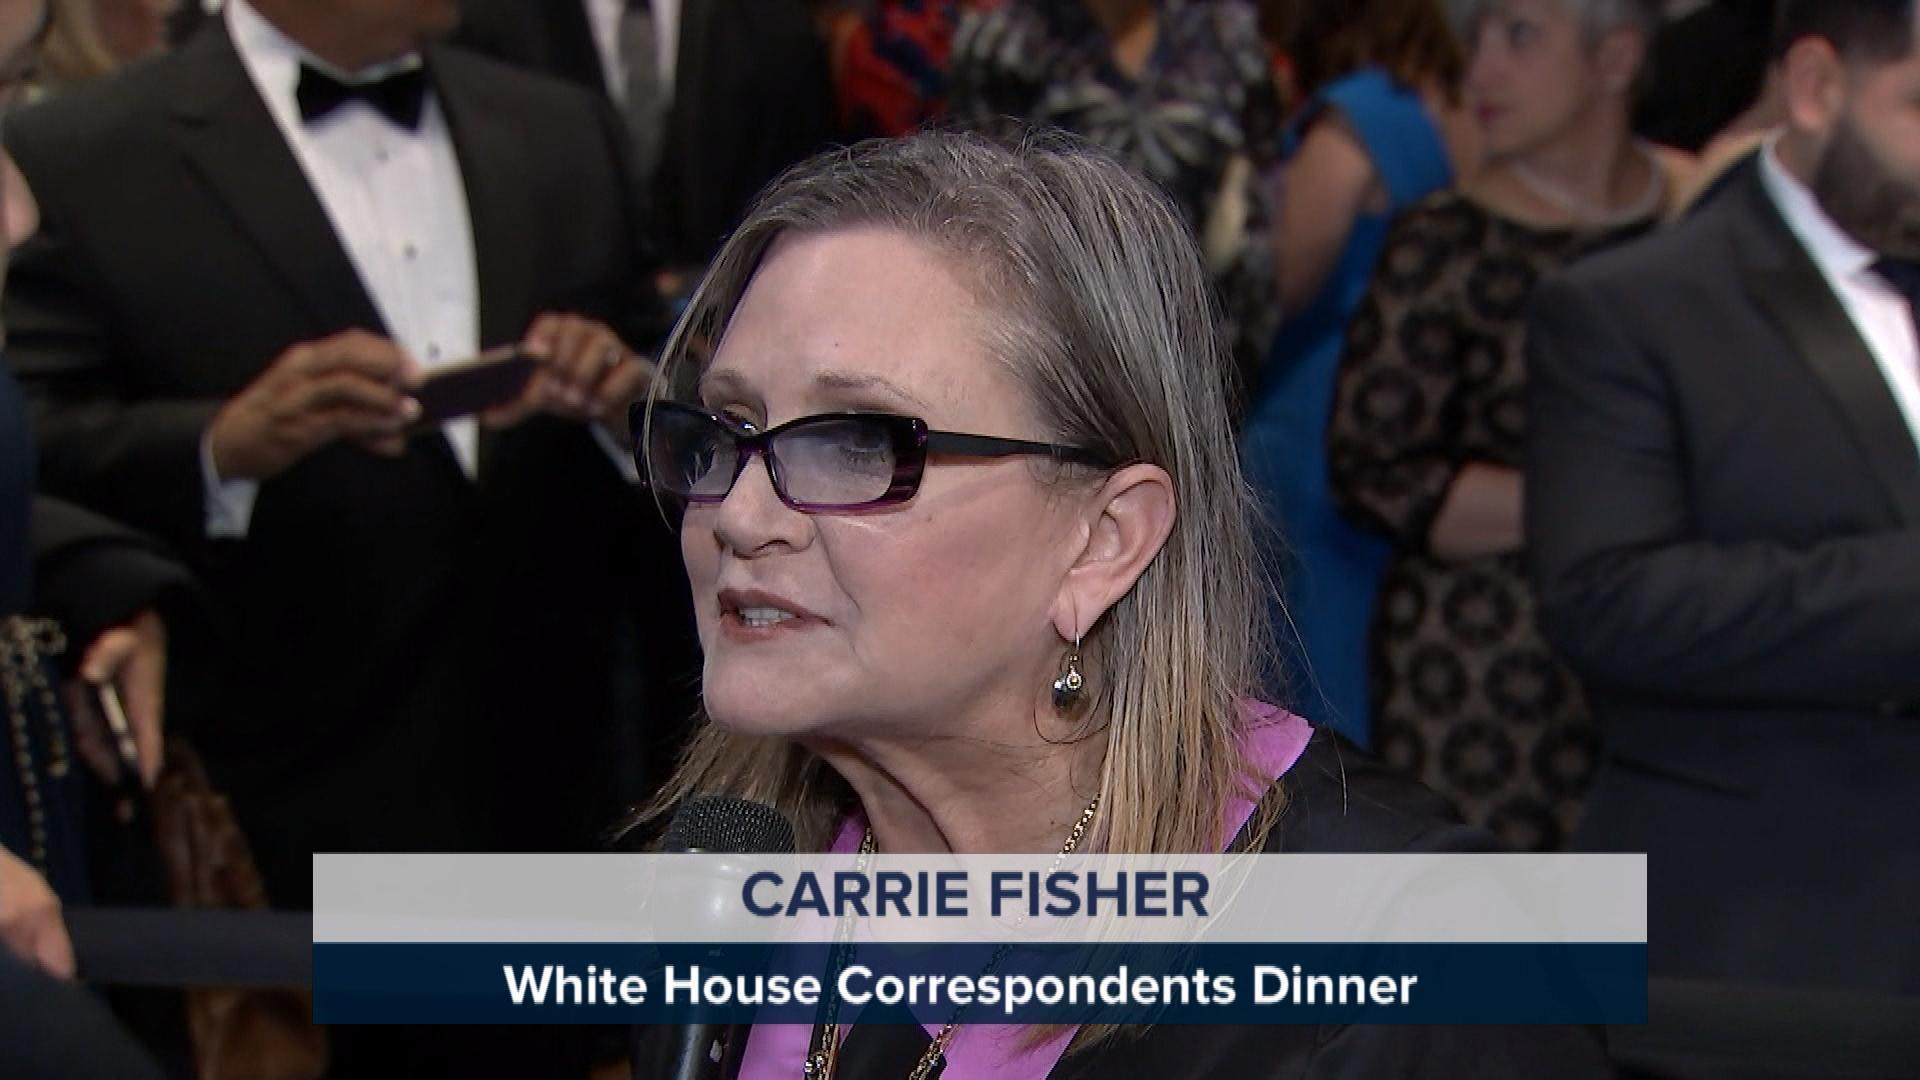 Celebs arrive to WH Correspondents' Dinner